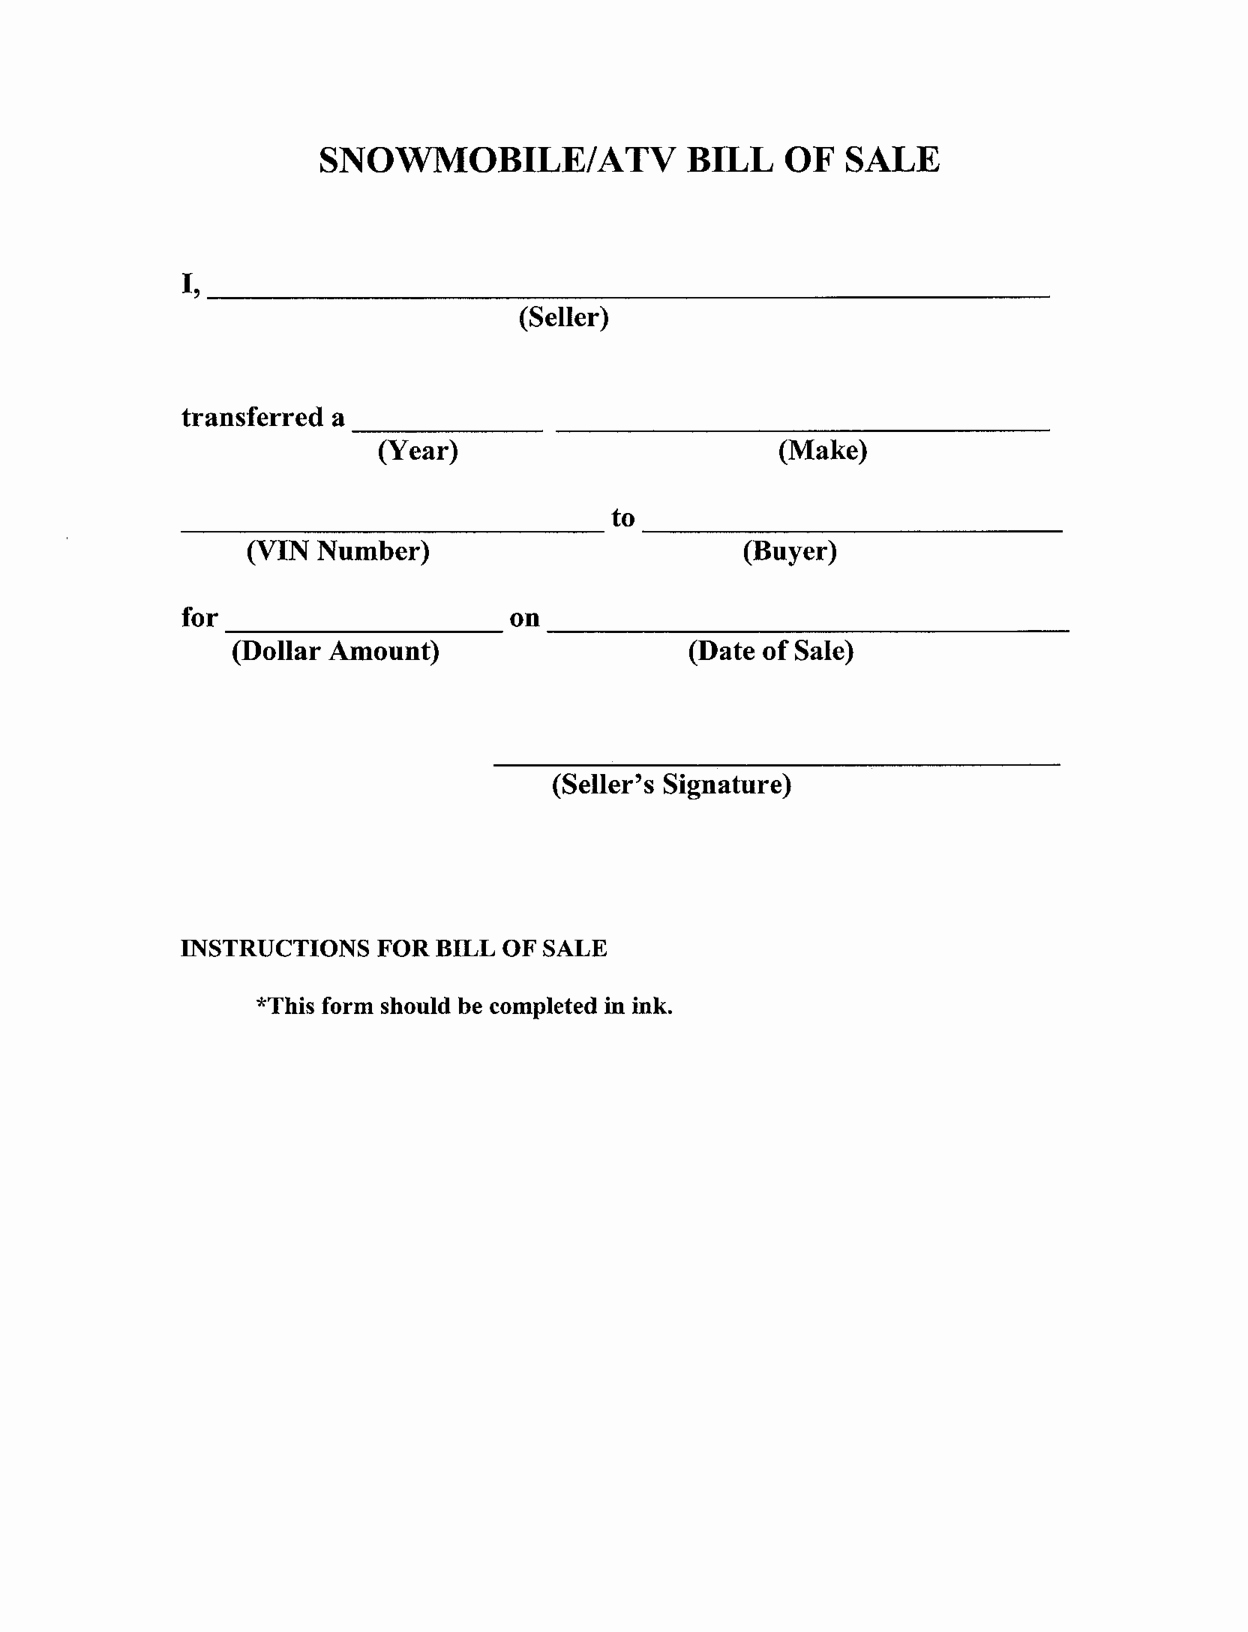 Bill Of Sale Contract Template Inspirational Free Printable Bill Of Sale Templates form Generic